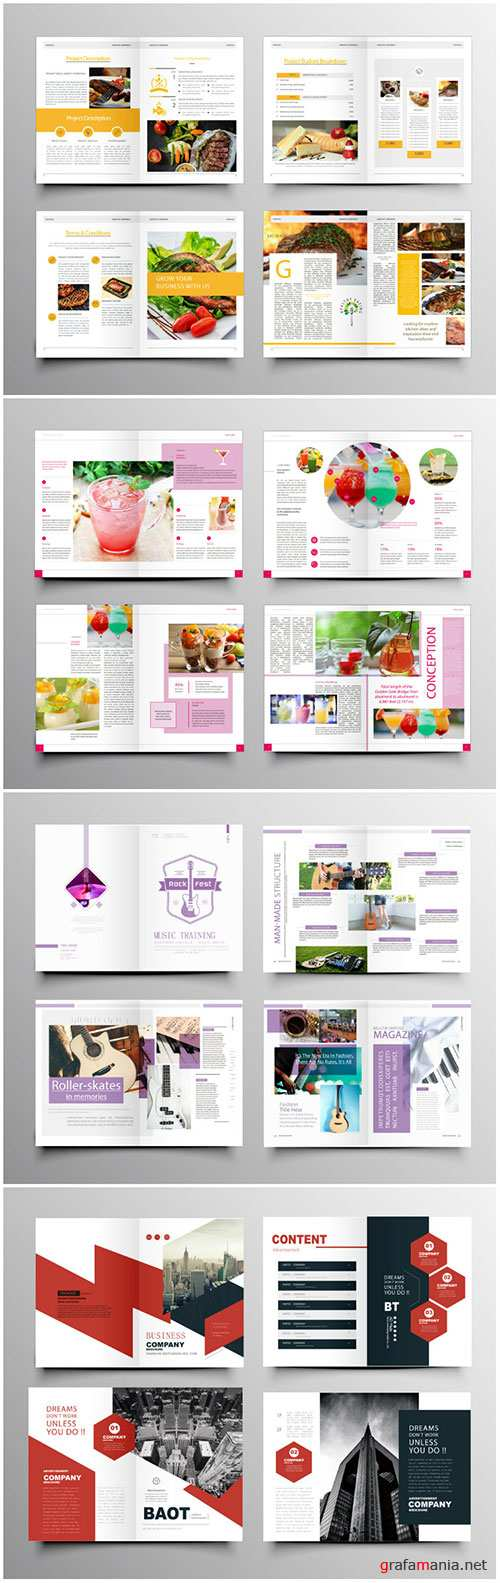 Brochure template vector layout design, corporate business annual report, magazine, flyer mockup # 230